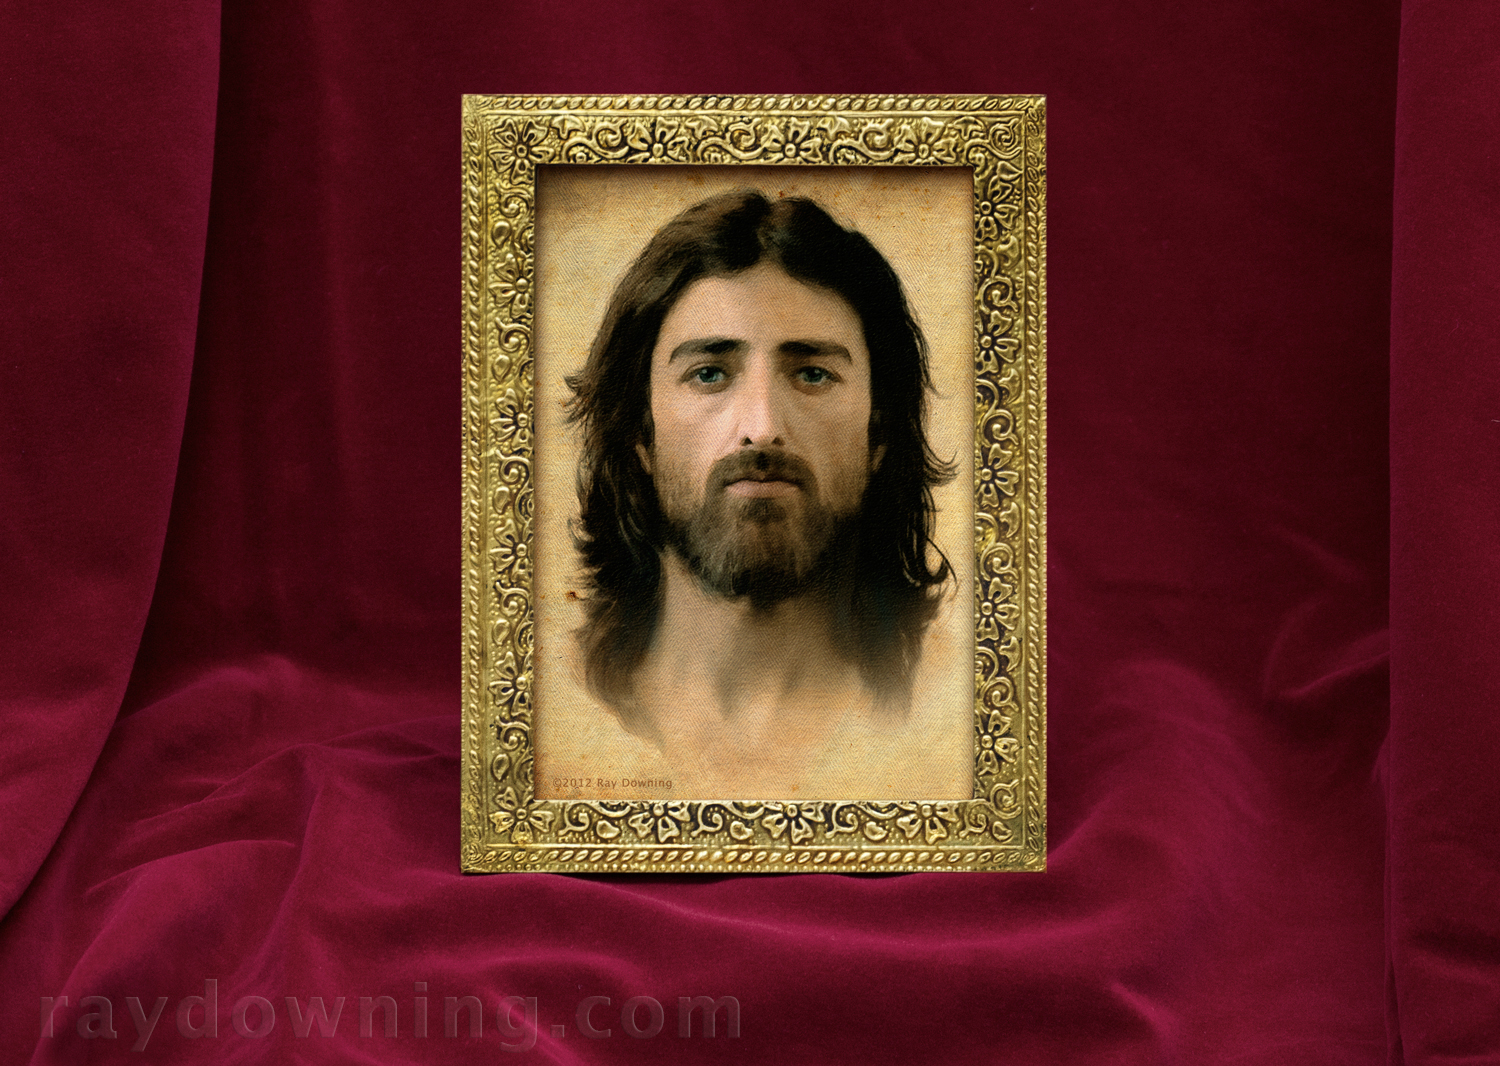 Jesus Portrait in Floral Gold Frame Ray Downing Shroud of Turin